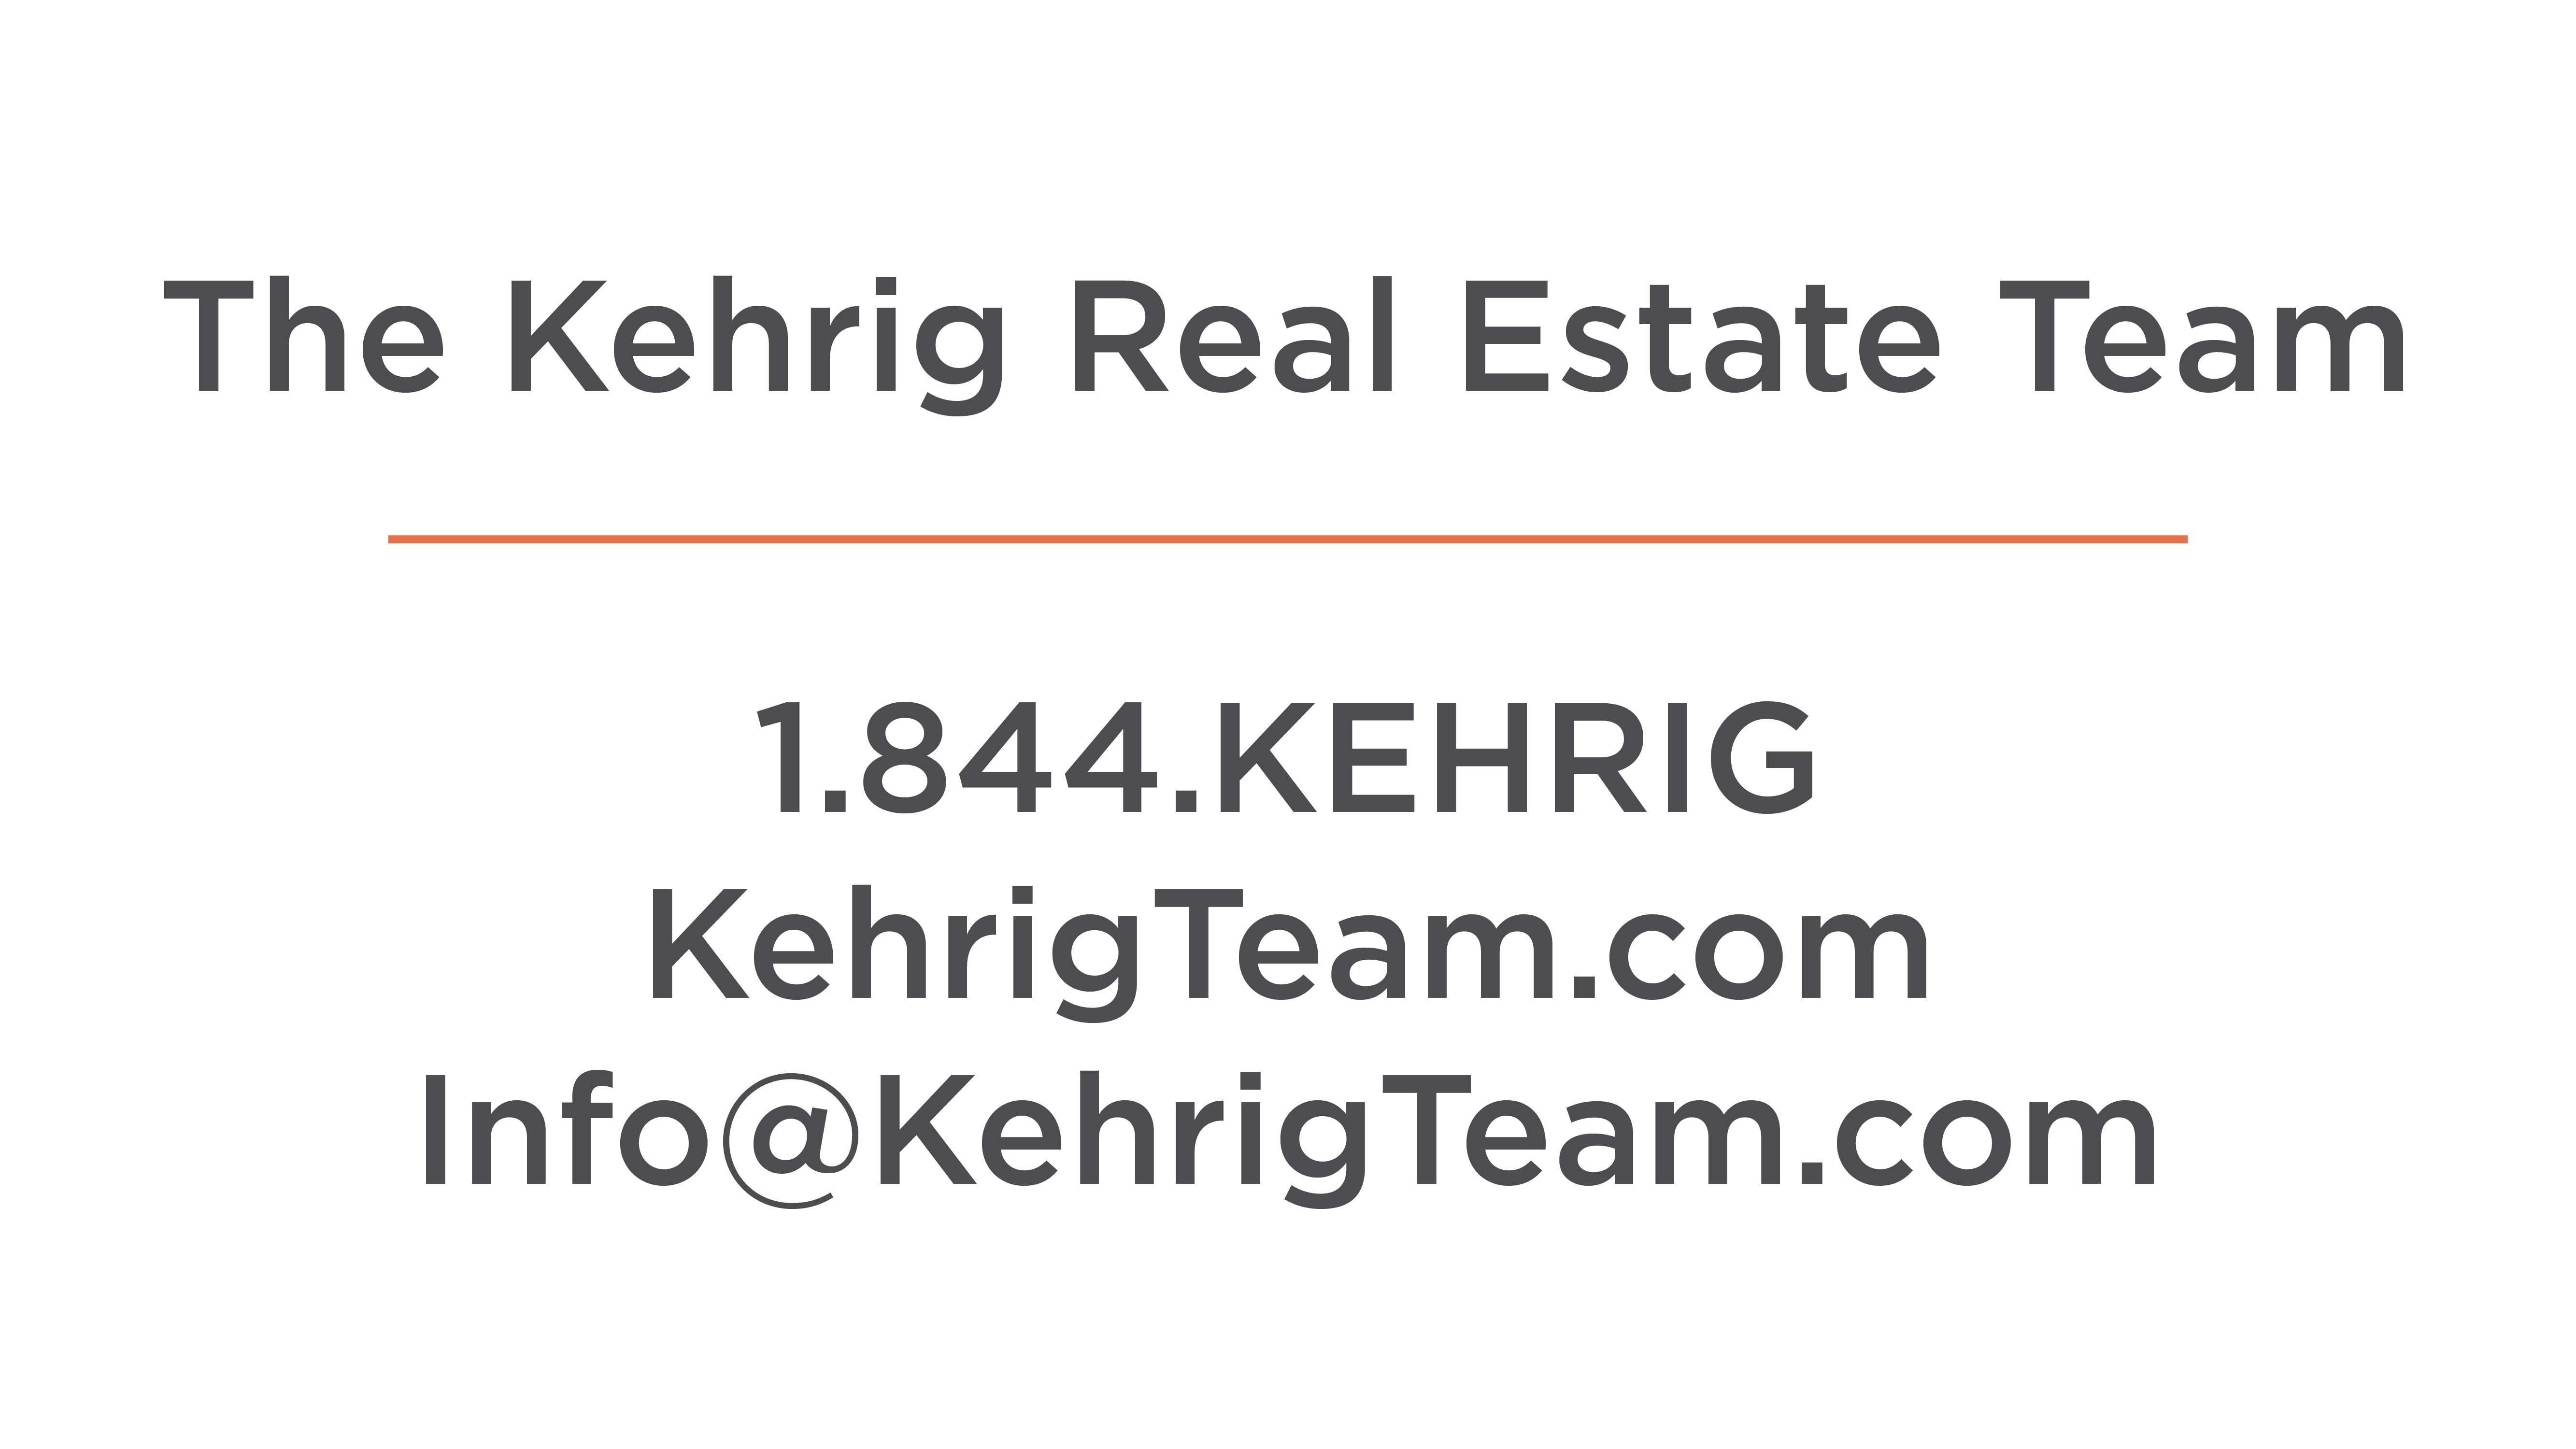 The Kehrig Real Estate Team